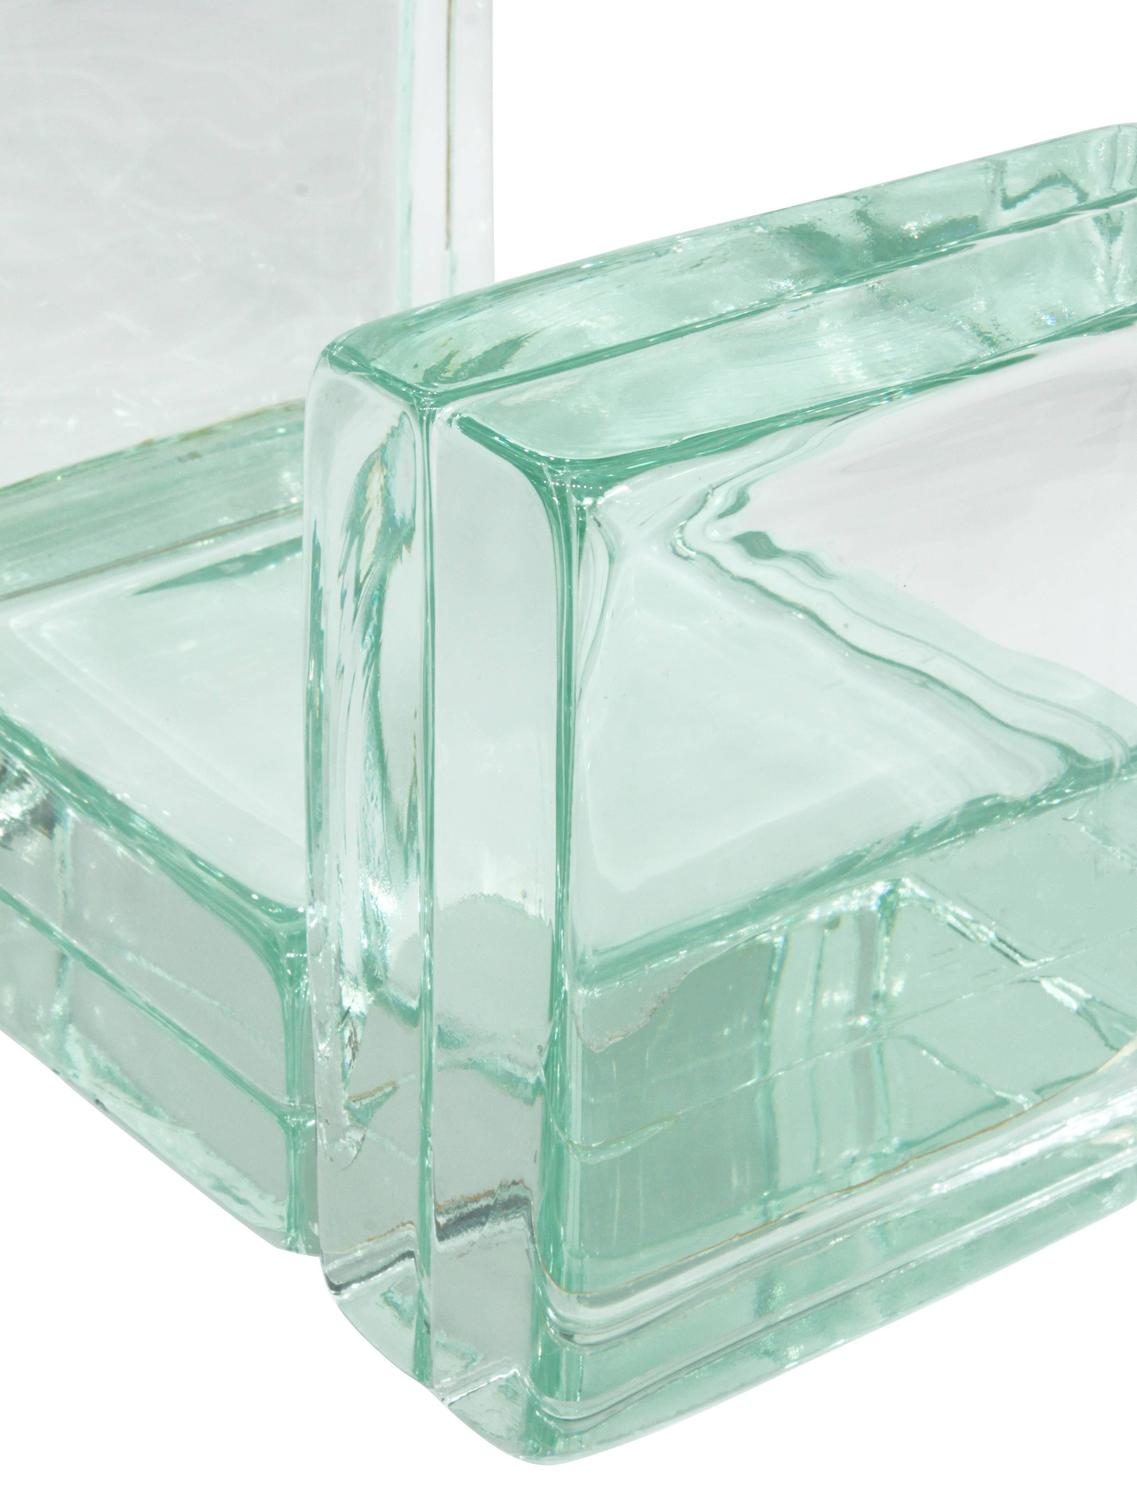 Chic Sculptural Glass Block Occasional Table By Imperial Imagineering At 1stdibs